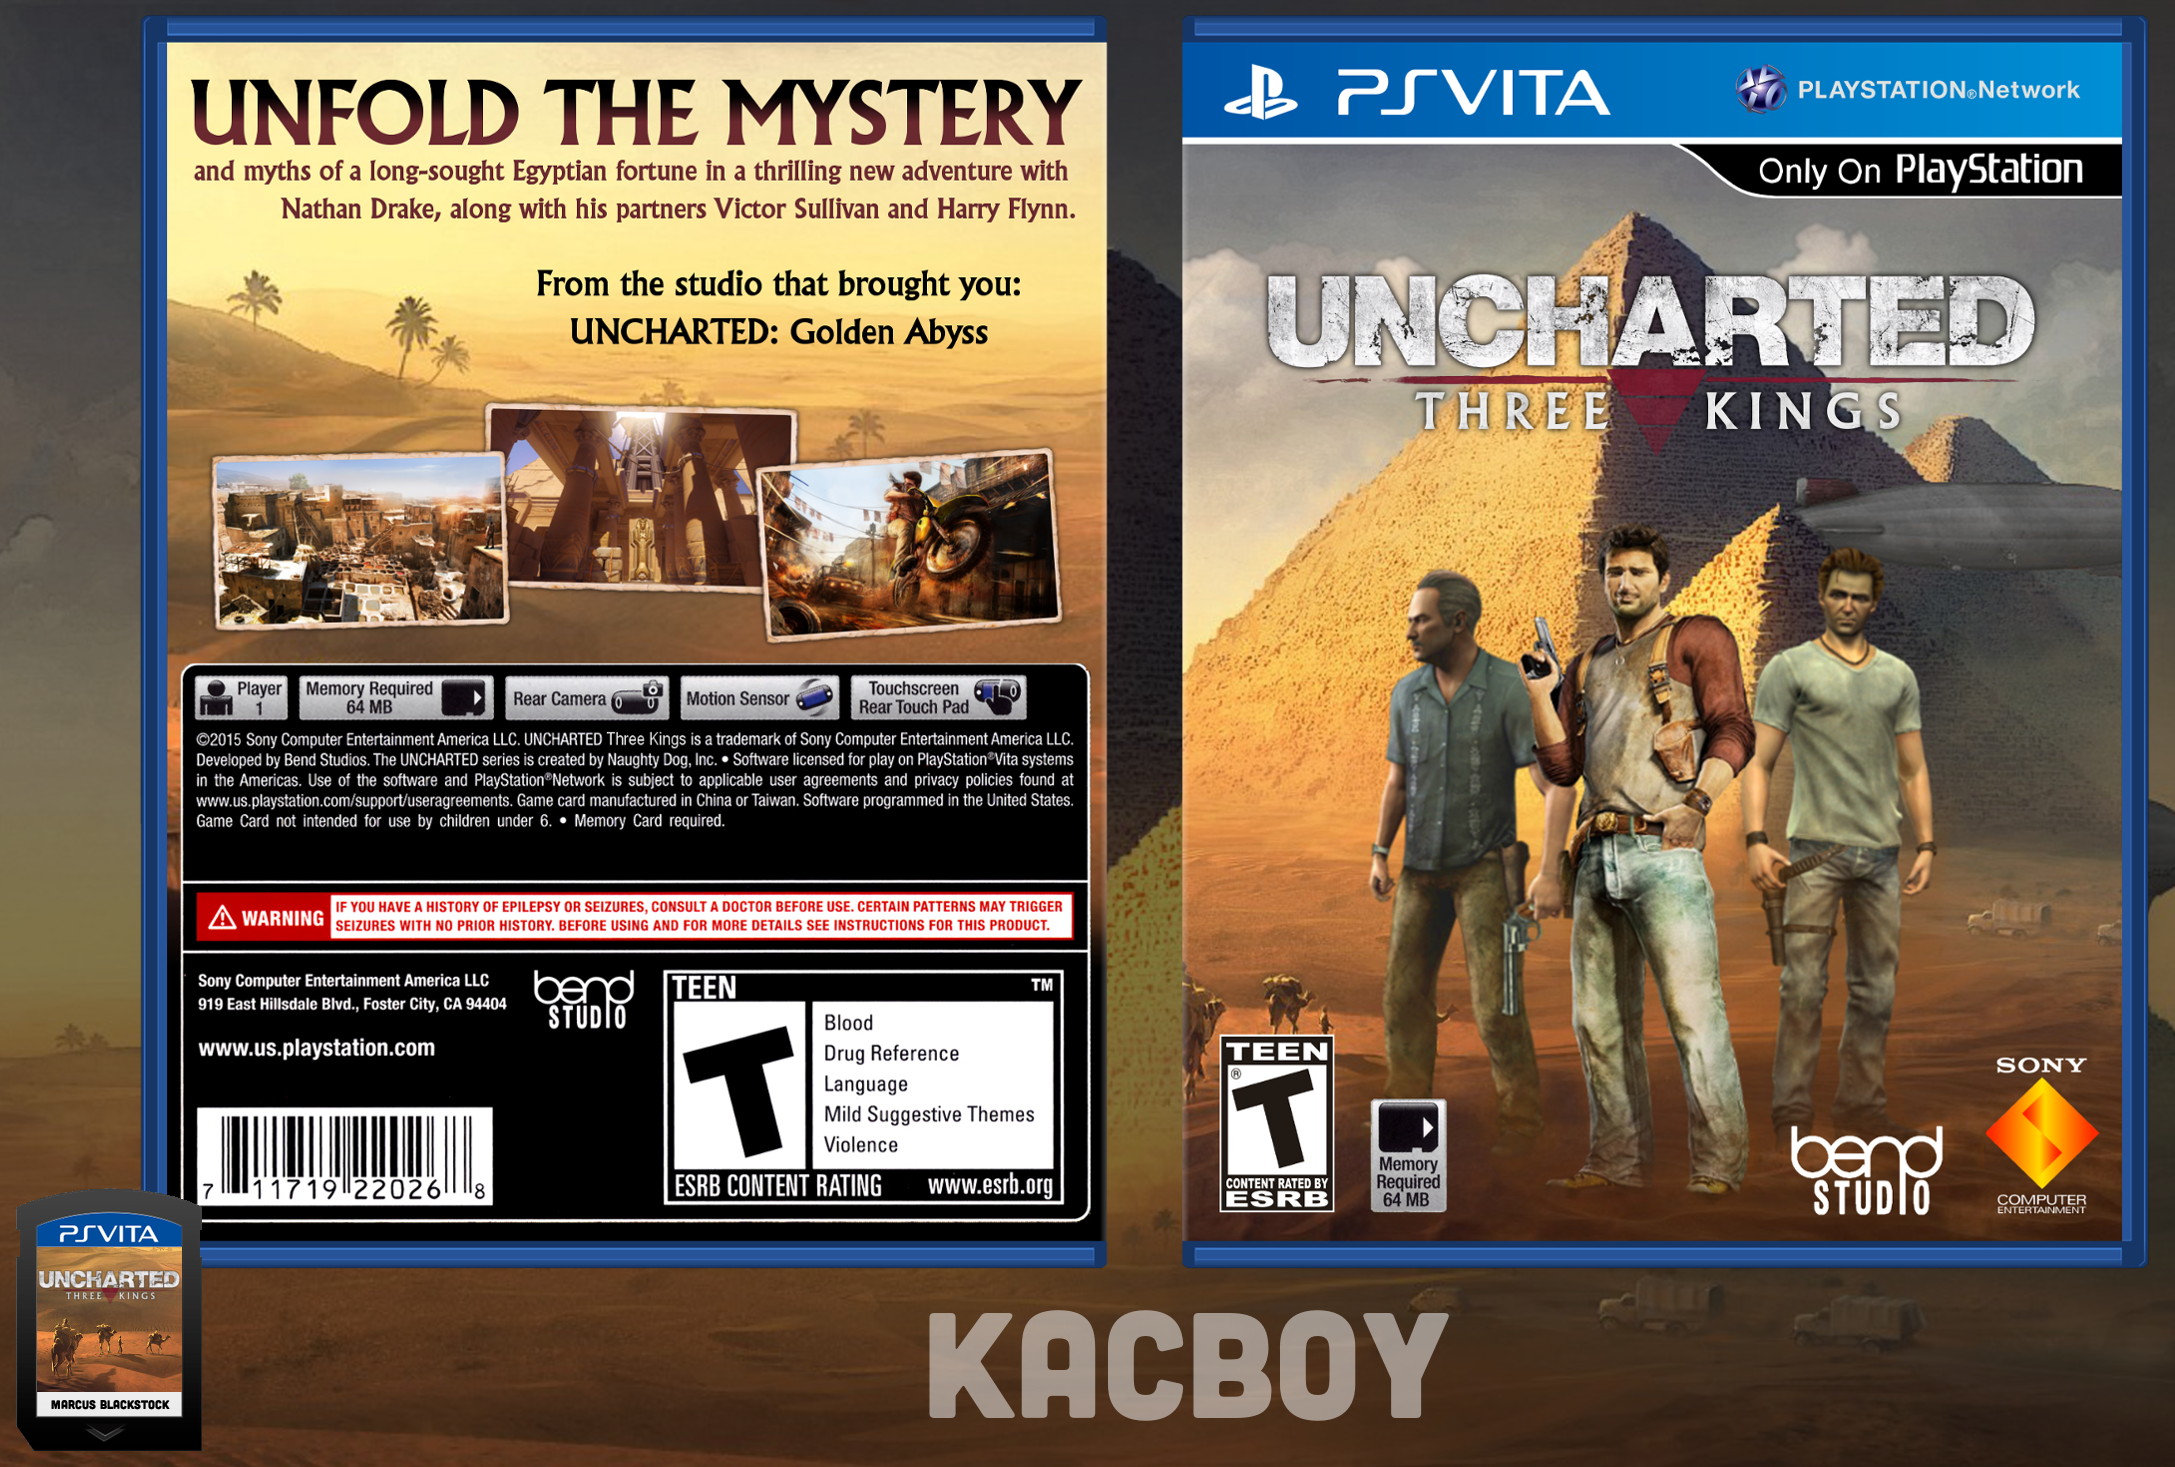 Uncharted: Three Kings box cover